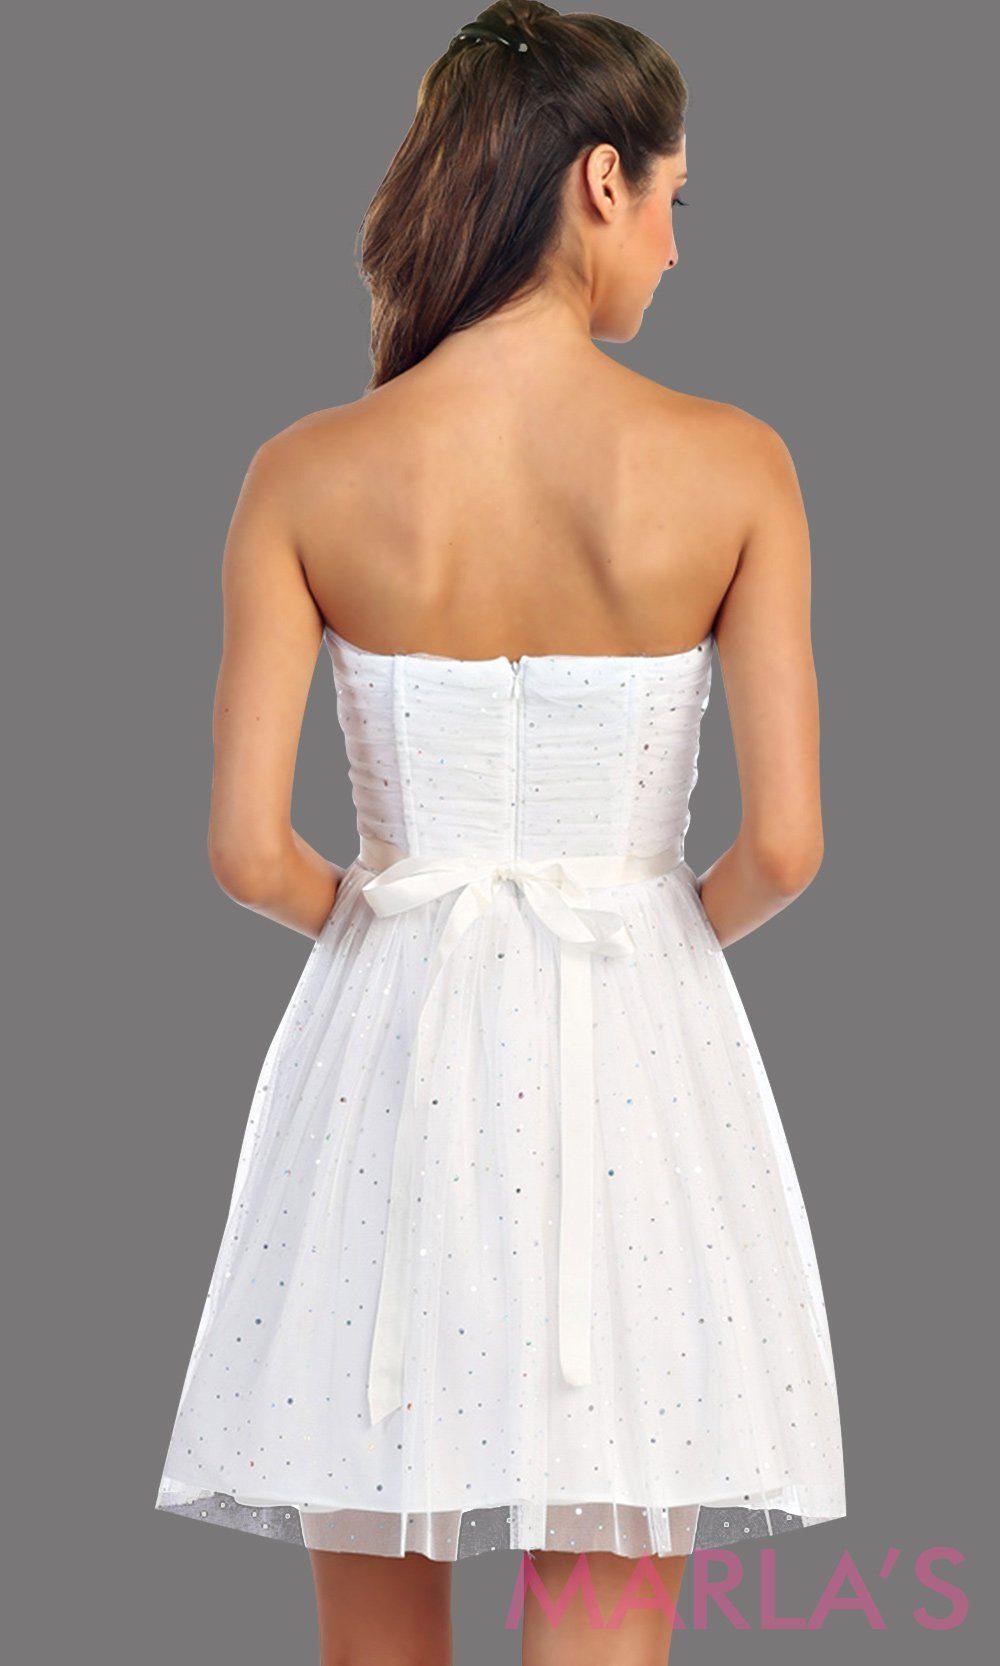 * Short White Lace Dress with All Over Glitter